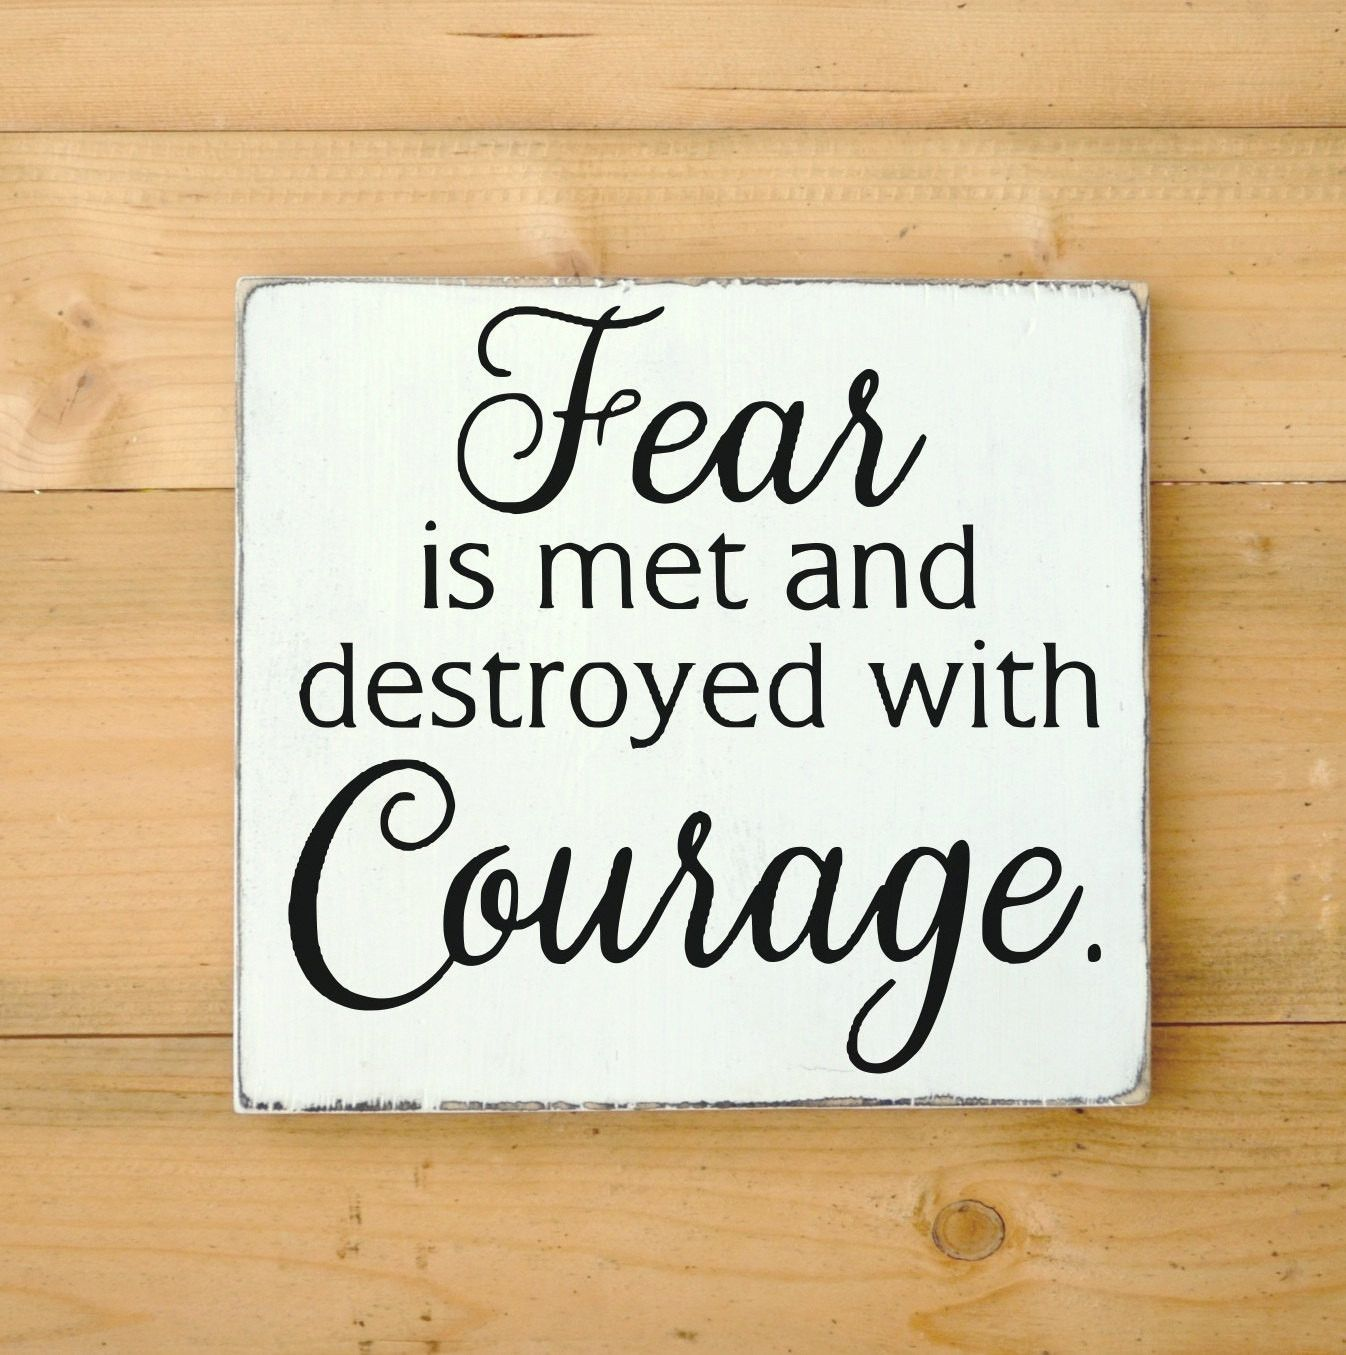 Inspirational Wall Art Custom Wood Signs Motivational Courage Quote Face Fear Strength Hard Work Life Quotes Work Life Quotes Courage Quotes Sign Motivational